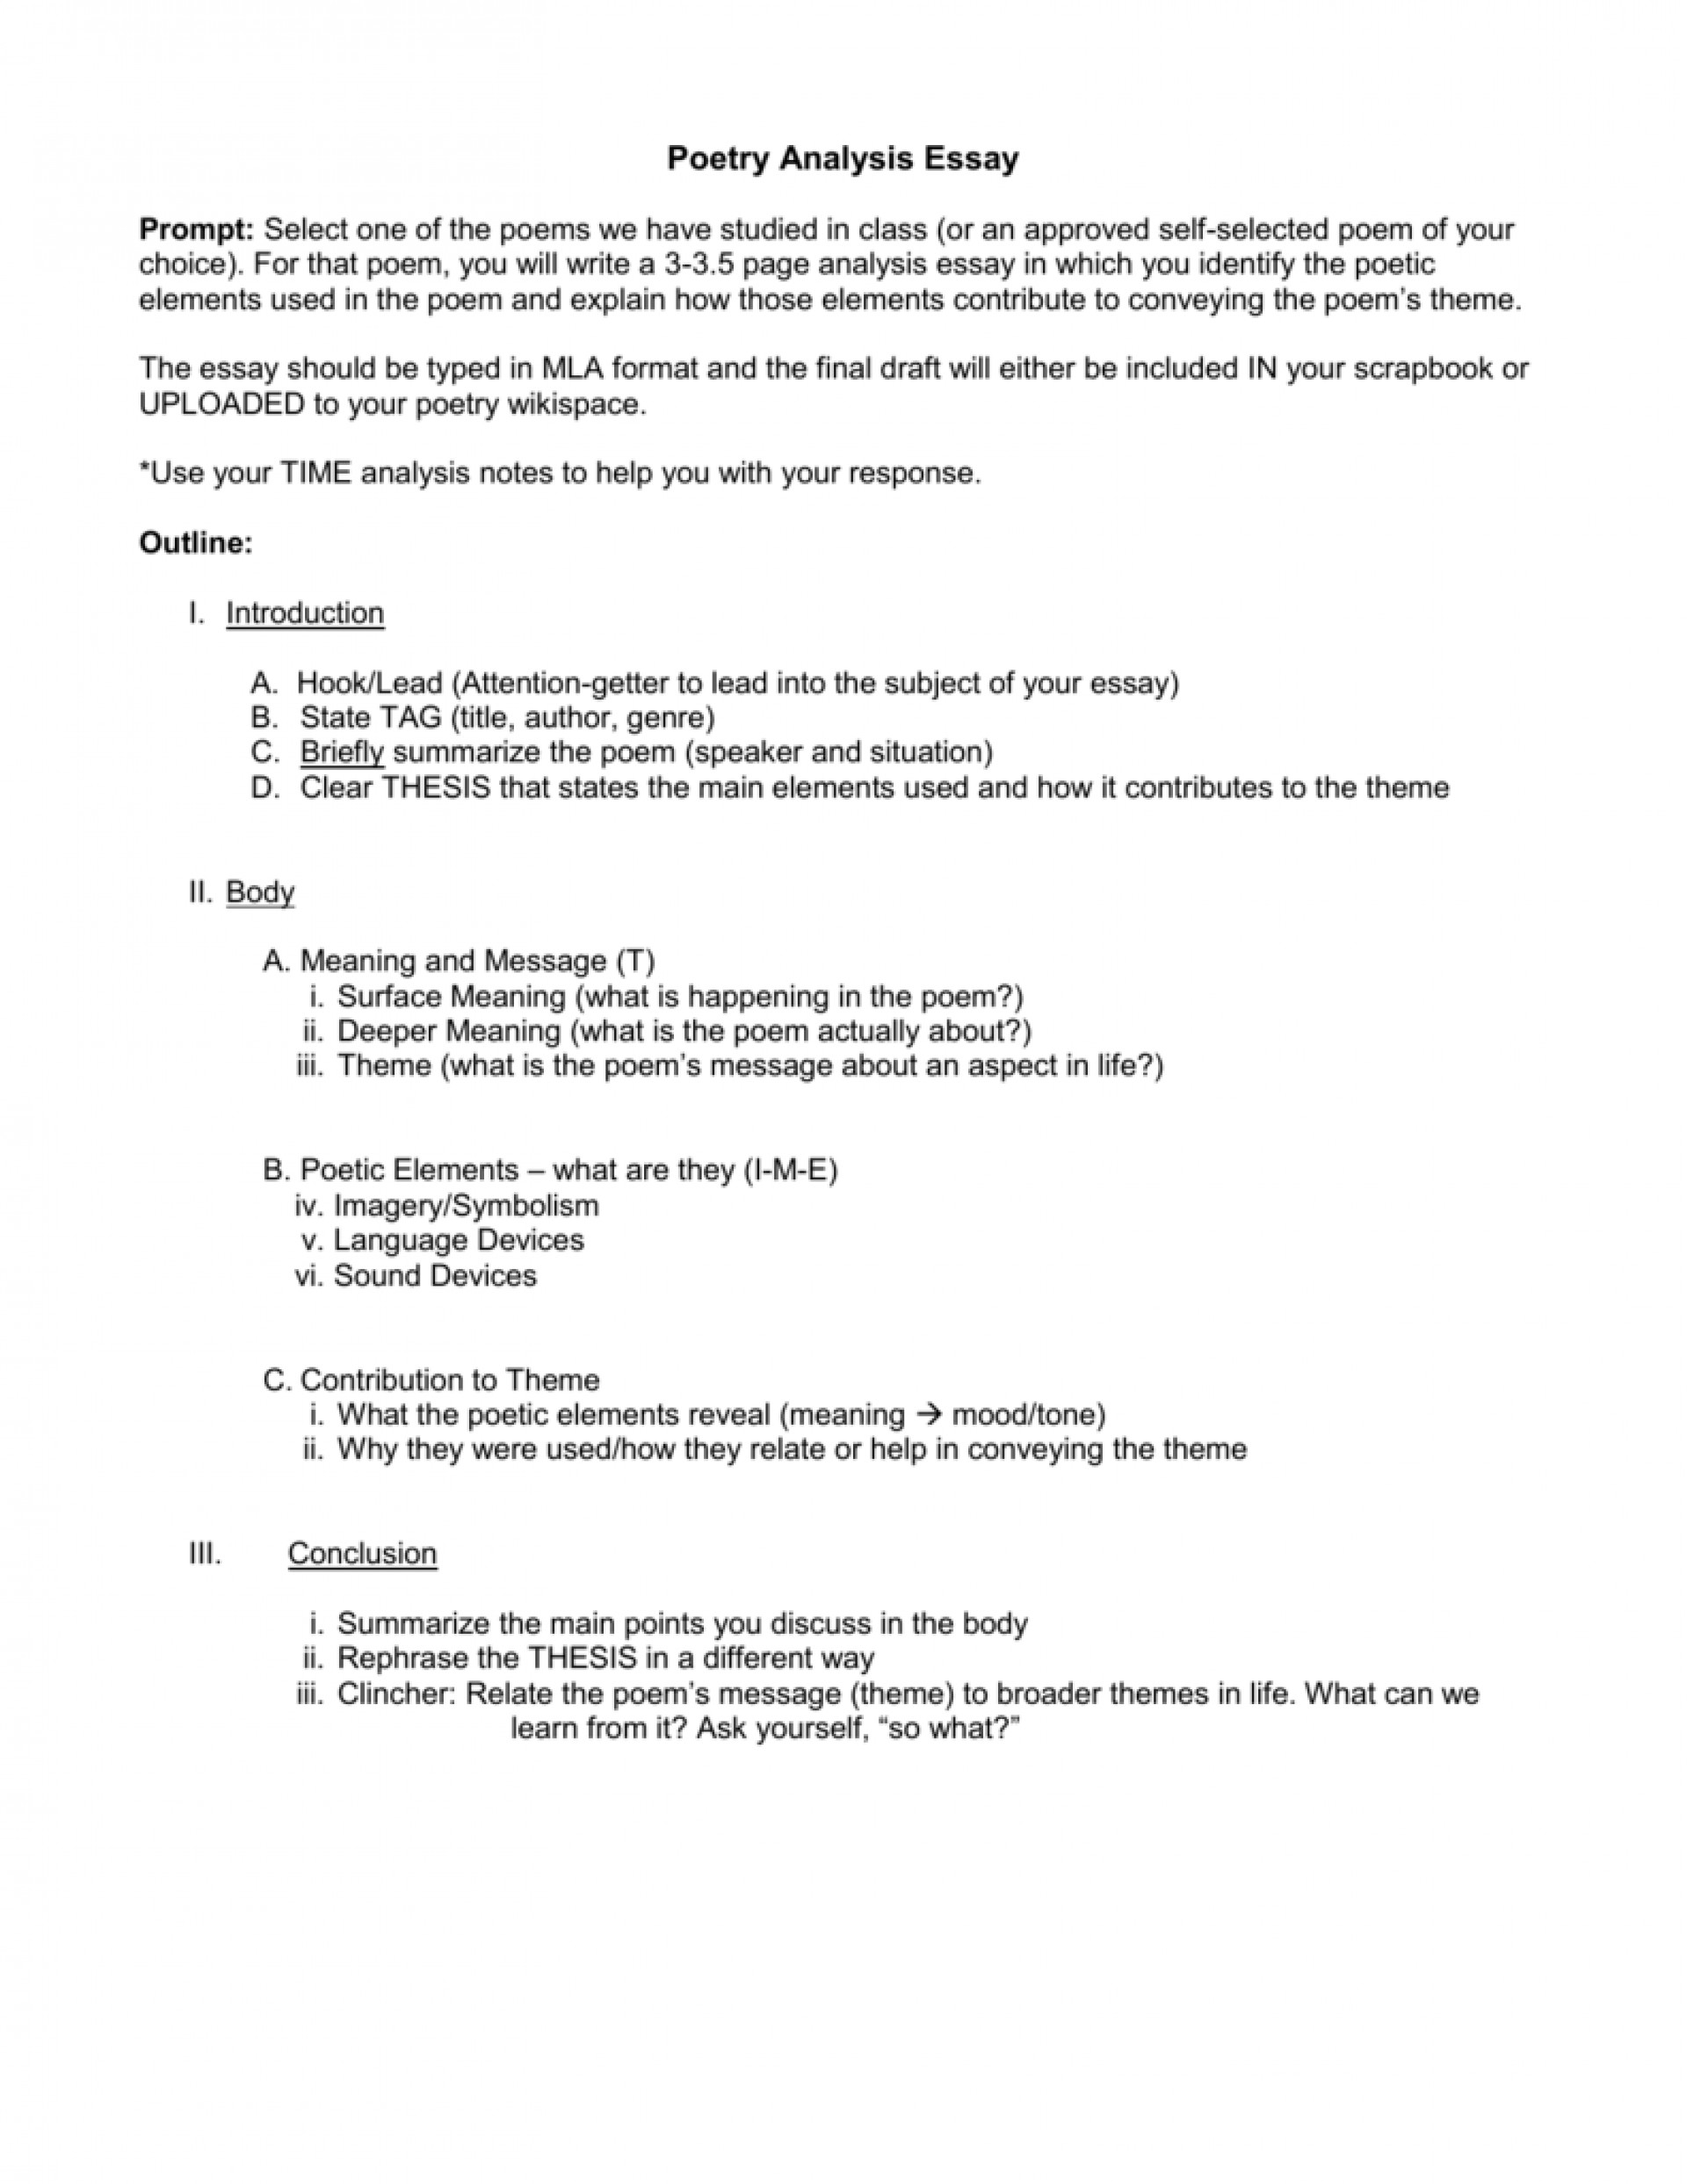 003 Essay Example 007600325 2 Poem Formidable Critique Analysis Introduction Outline Template 1920